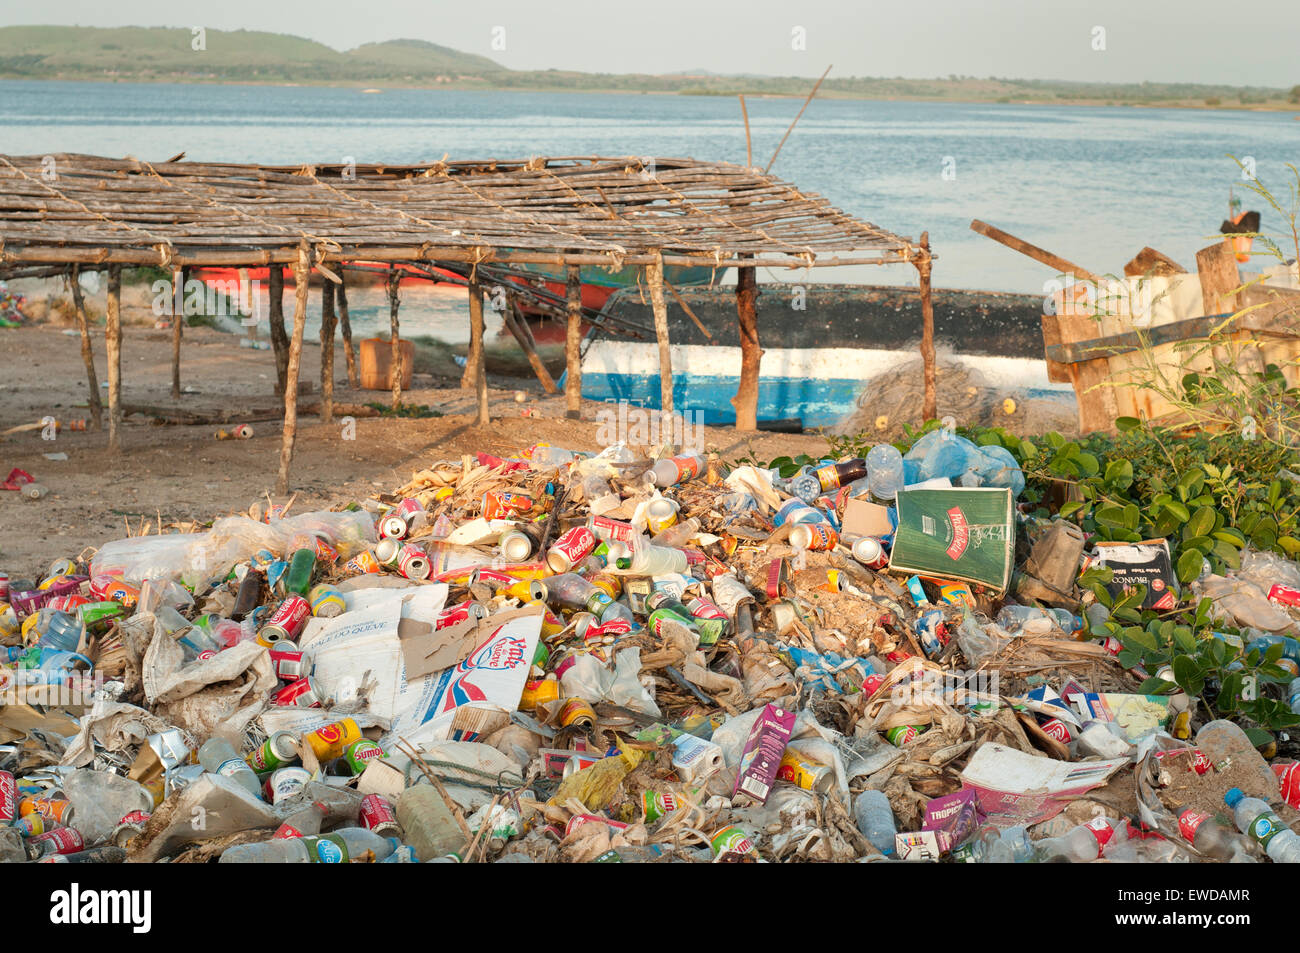 Rubbish accumulated on the beach of Ambriz, Angola - Stock Image